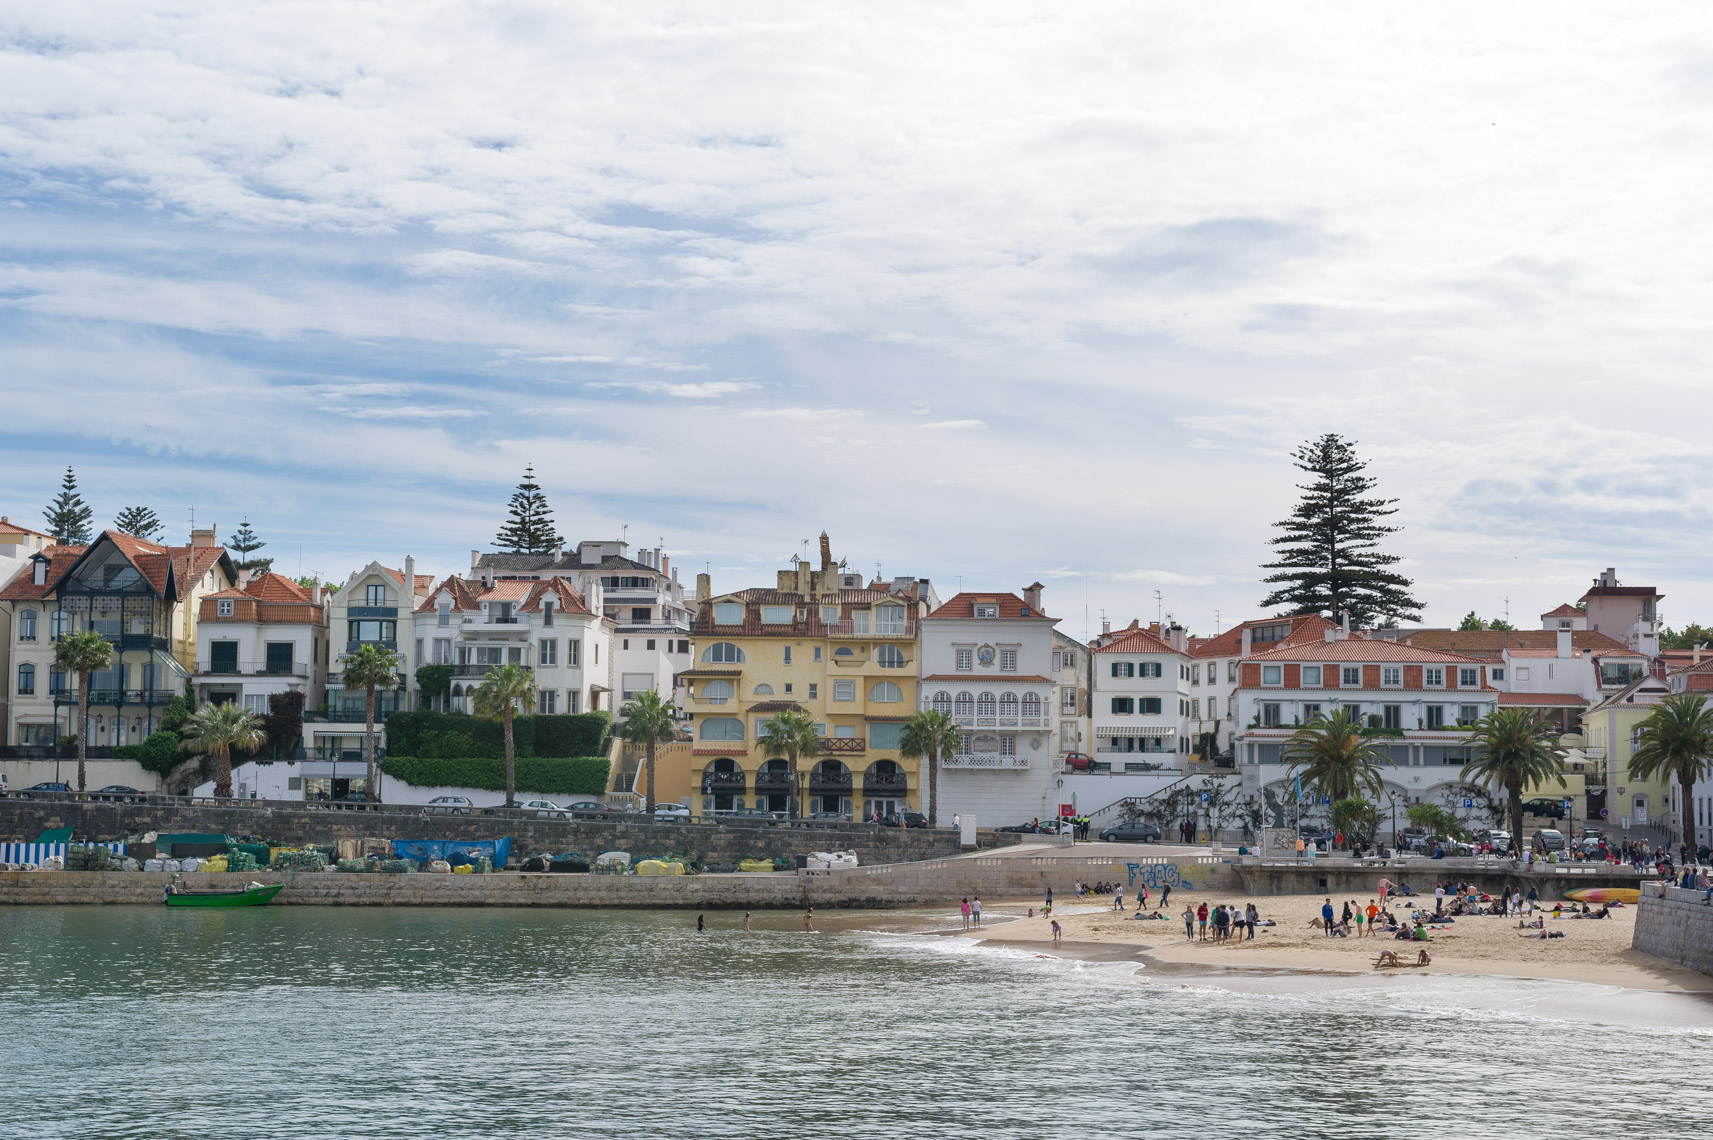 Photo by Morgan Ione Yeager, NYC Food photographer, Travel photographer, Cascais Portugal, House Of Wonders, destination